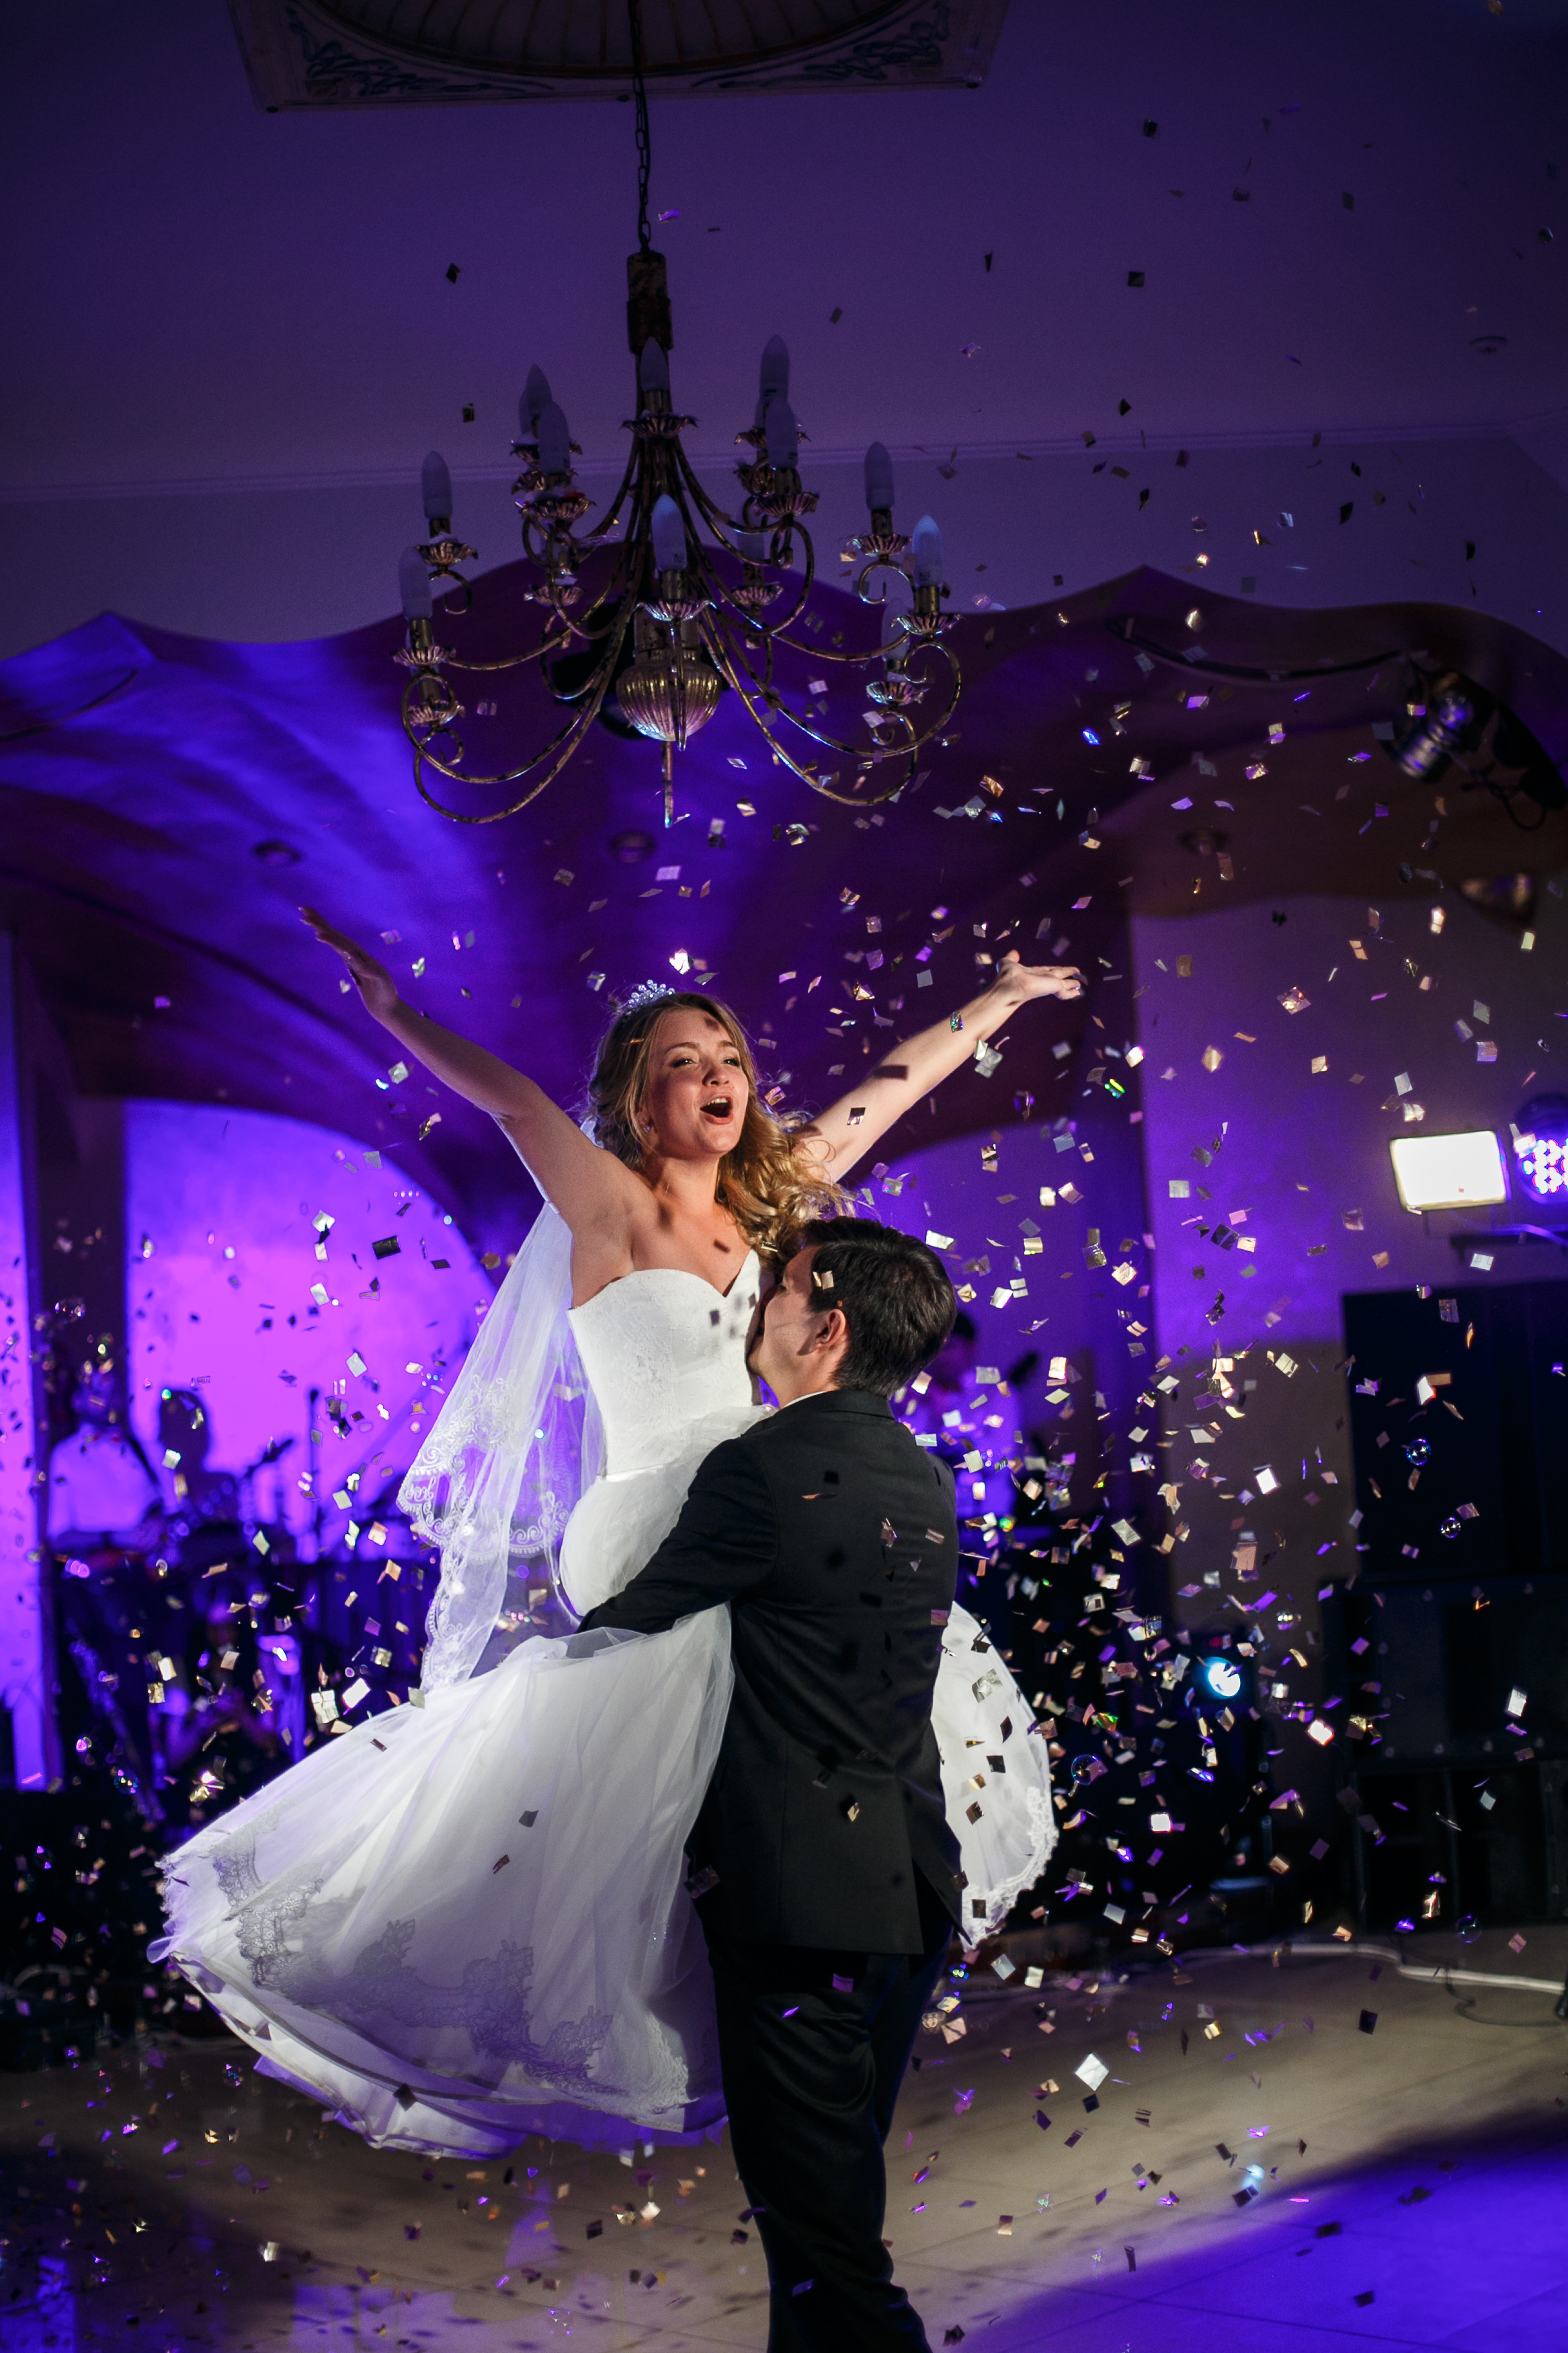 Two Brides First Dance Under Falling Confetti